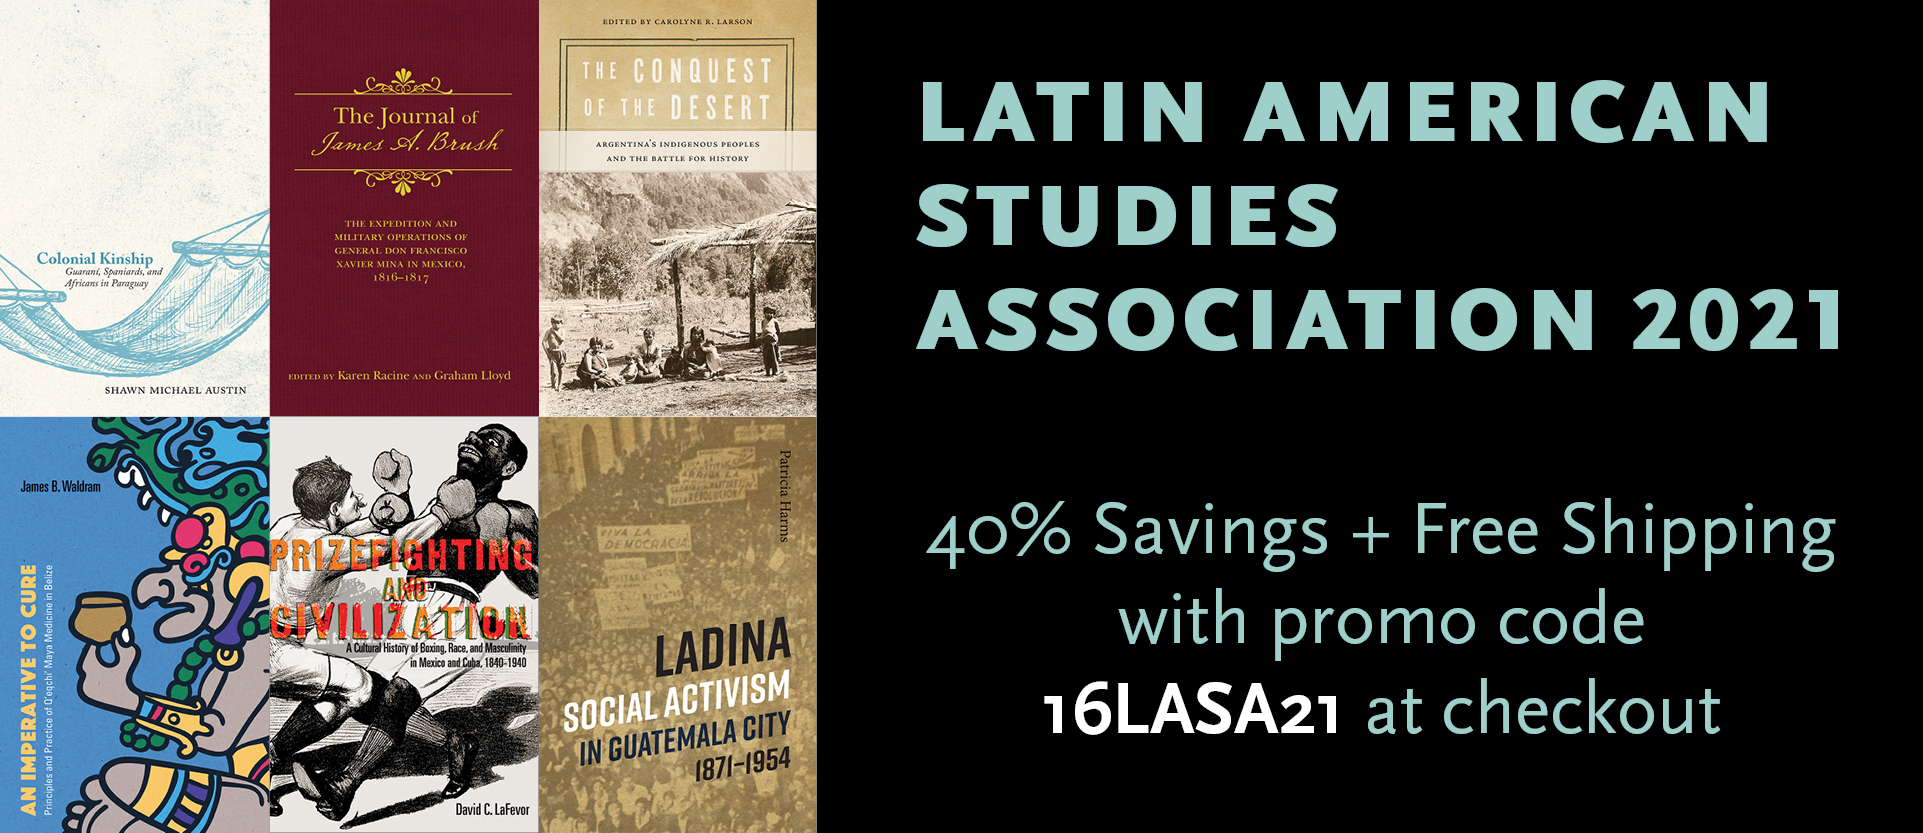 Latin American Studies Association 2021 Banner